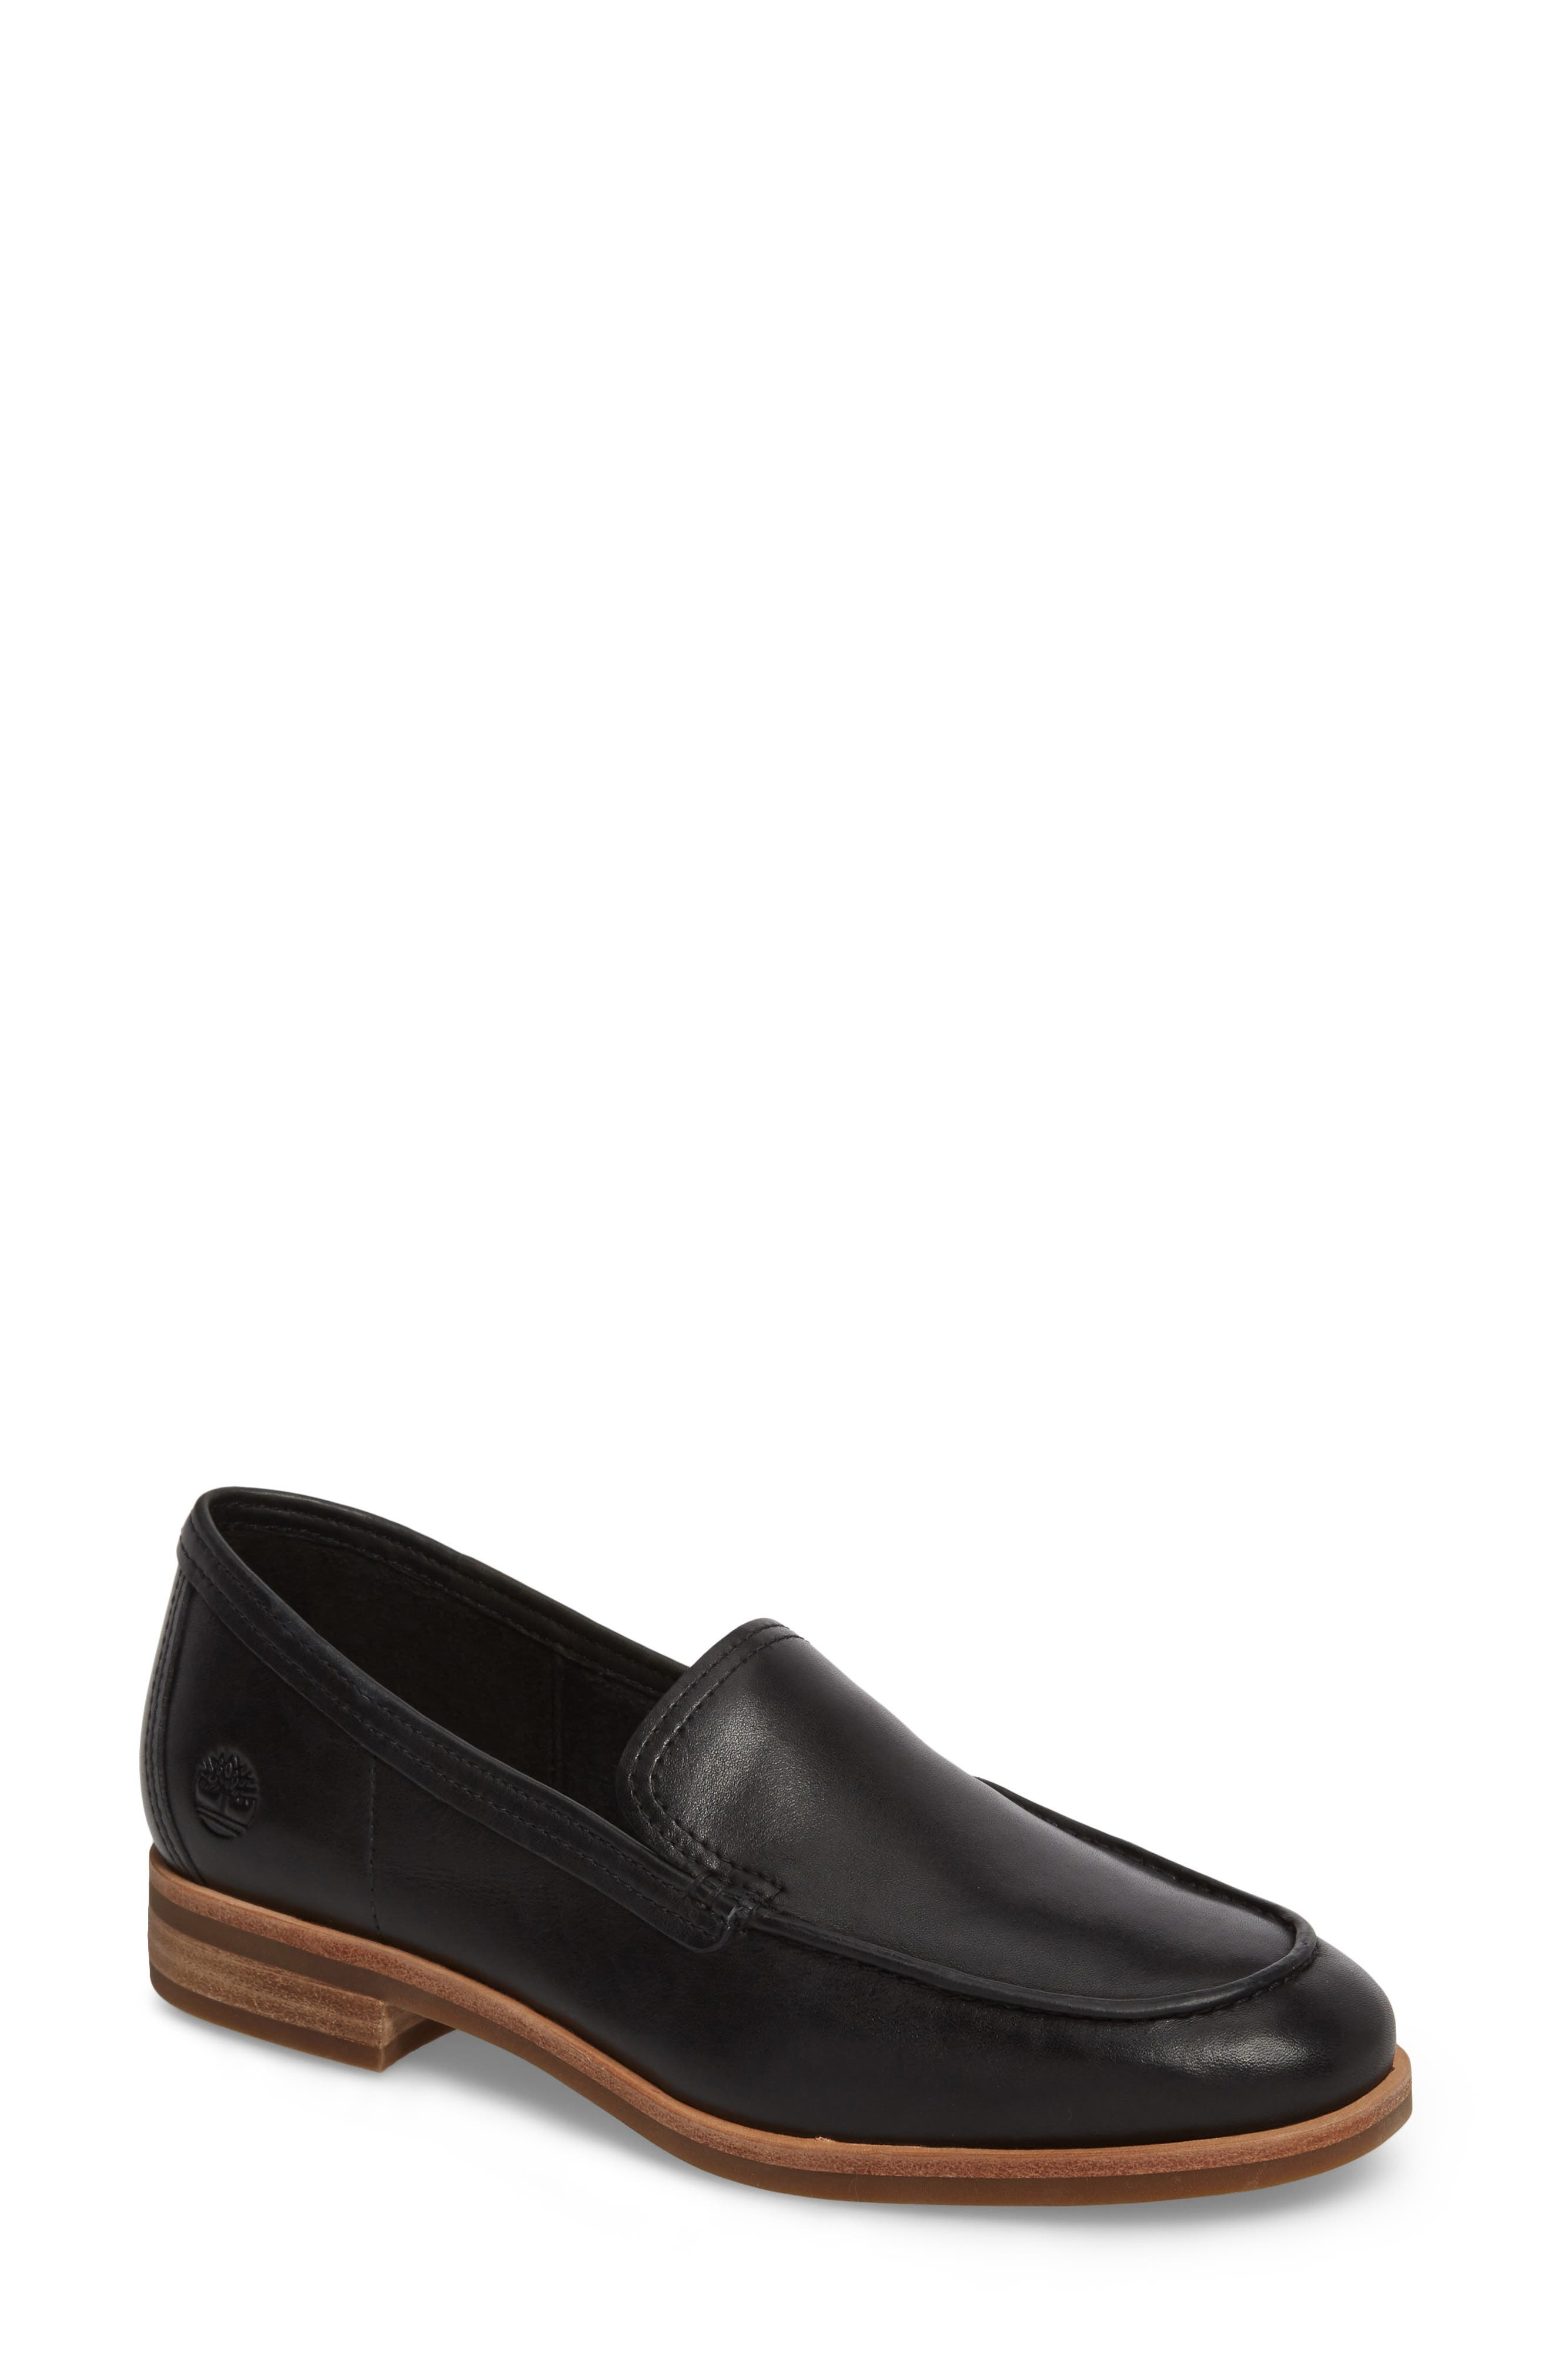 Somers Falls Loafer,                         Main,                         color, 001